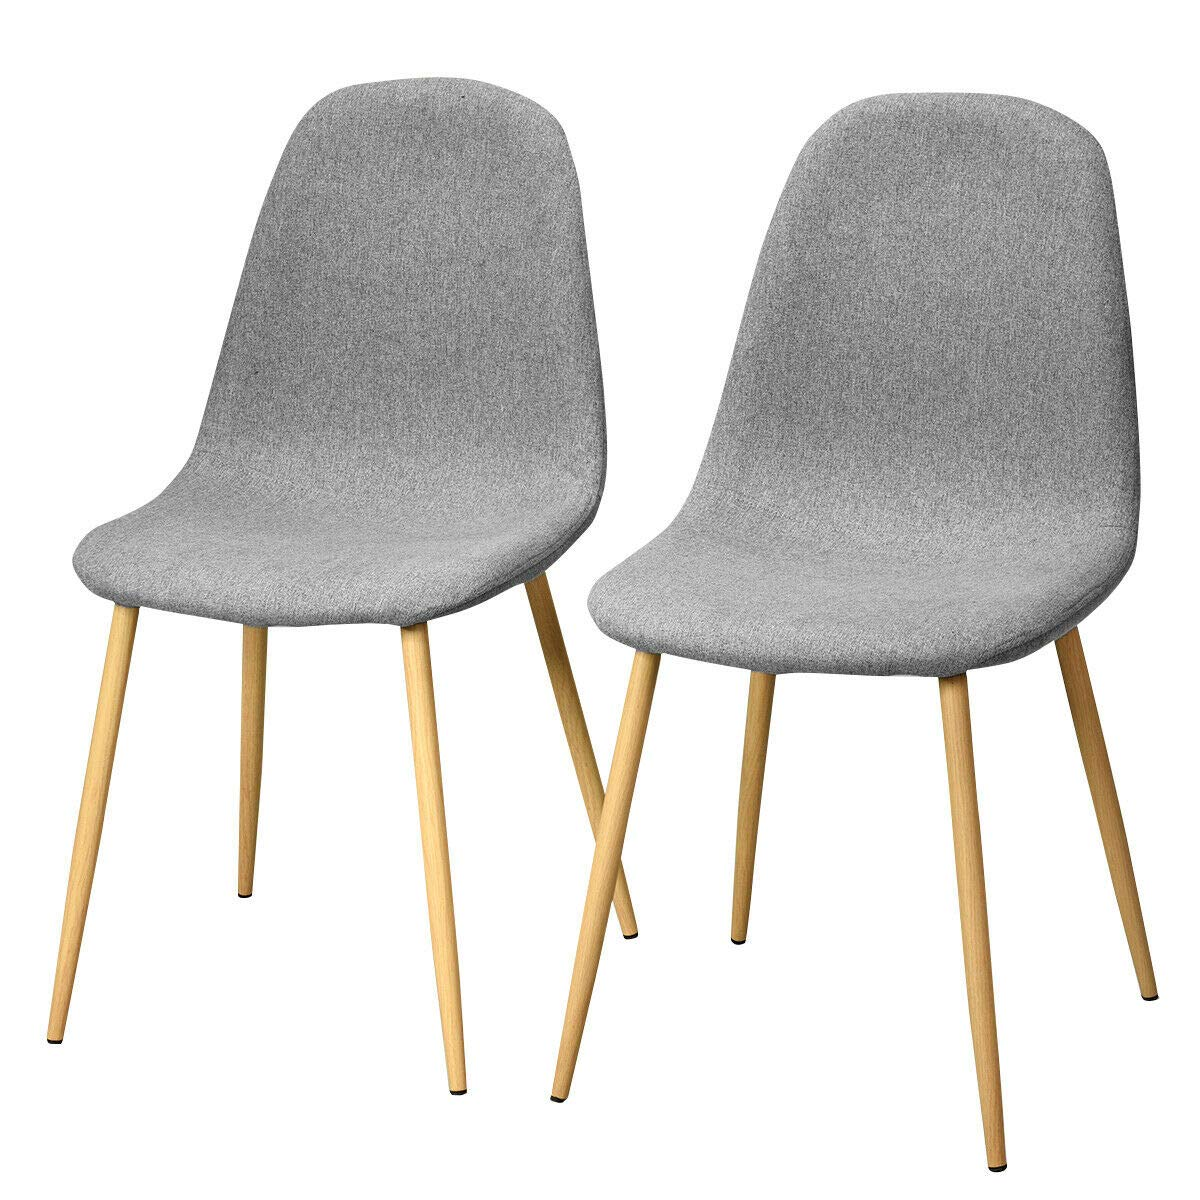 Giantex Set of 2 Kitchen Dining Chairs, Easily Assemble Modern Fabric Cushion Seat Chair w/Metal Legs, Mid Century Armless Chairs for Kitchen, Dining Room, Restaurant, Gray by Giantex